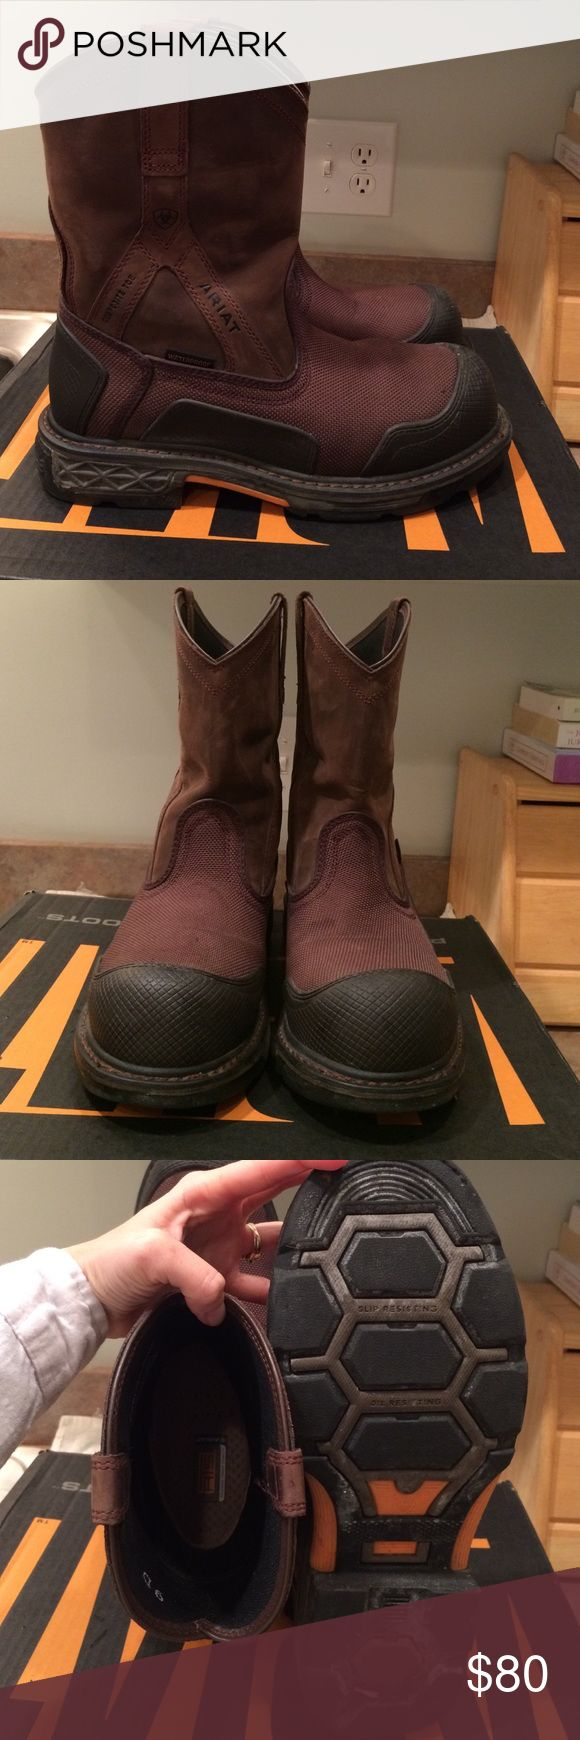 Ariat work boots size 9 Ariat work boots size 9. Only wore twice. They were to little and couldn't take back after you walk outside in them. In good gently used condition. Waterproof, composite toe, slip resistant. Brown and black in color. Ariat Shoes Boots